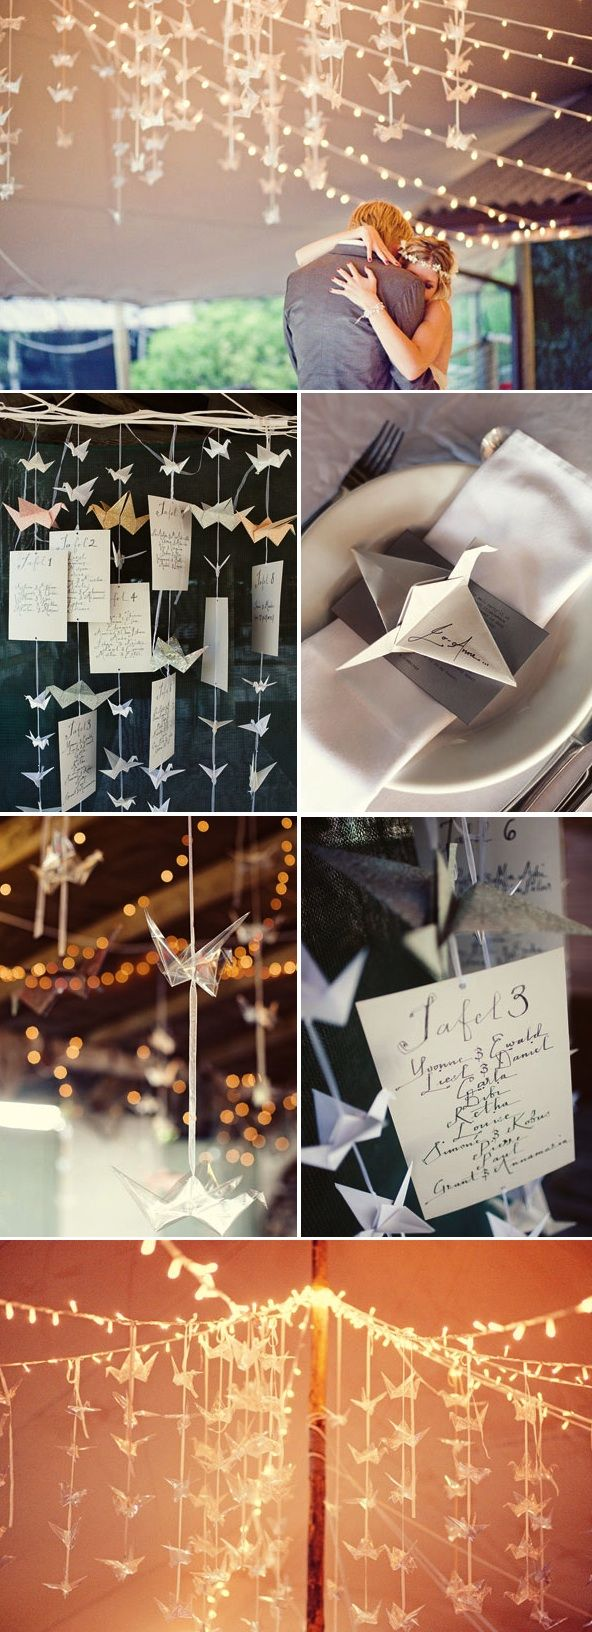 -Paper Crane Wedding Decor- » Alexan Events | Denver Wedding Planners, Colorado Wedding and Event Planning